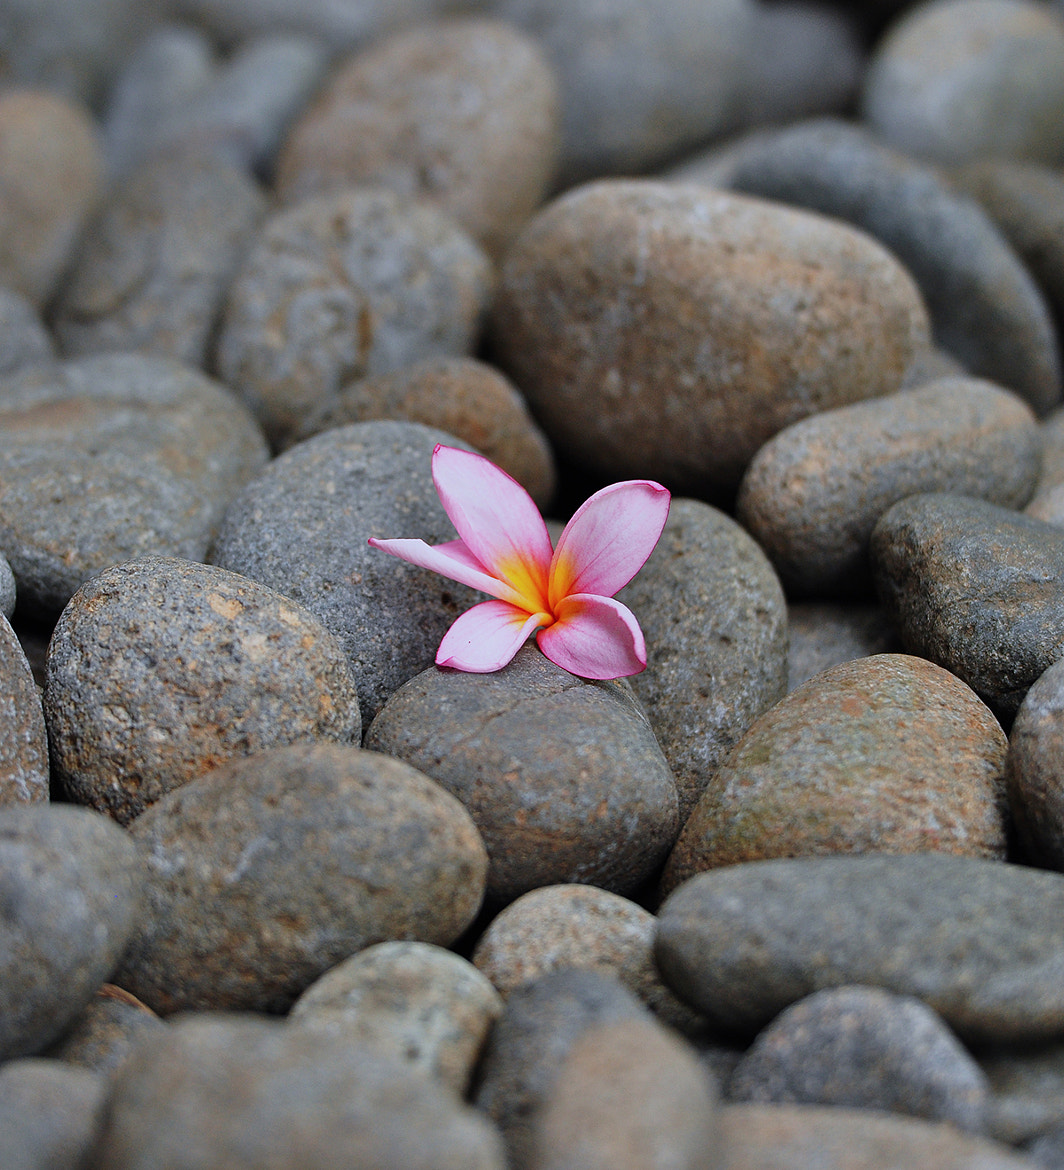 Photograph Stone Flowers by Wawan Setiawan on 500px